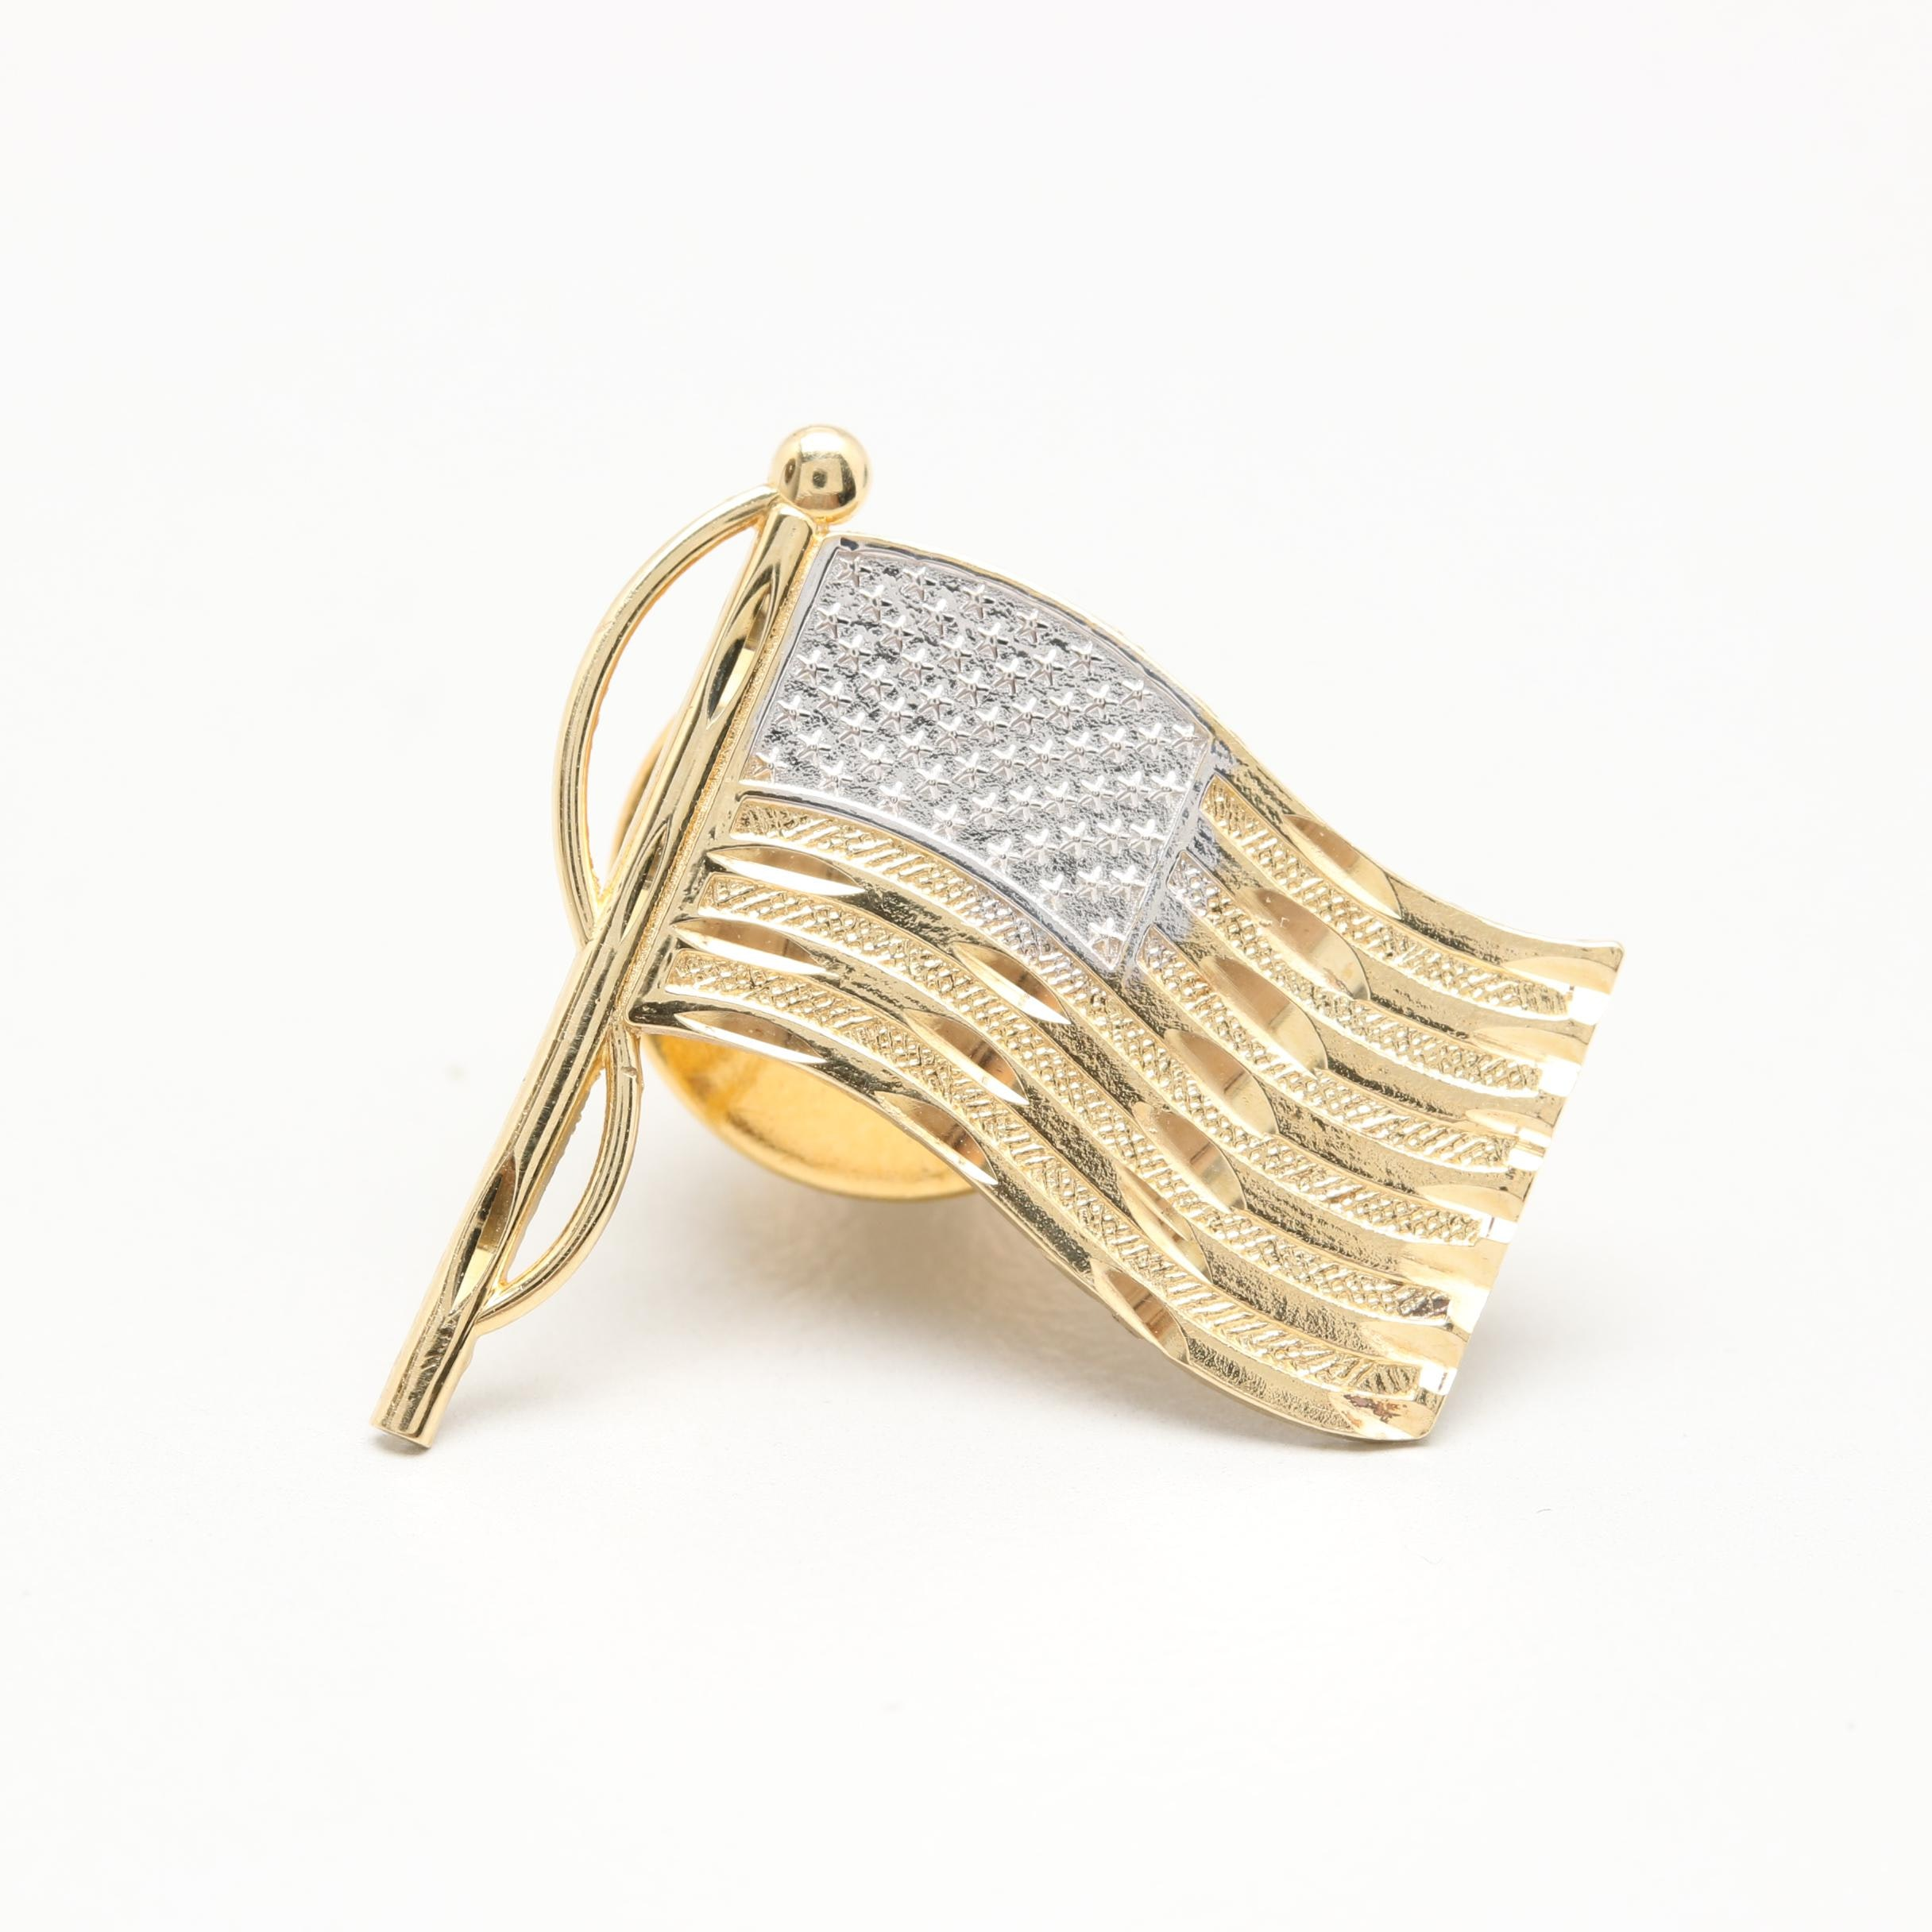 14K Yellow and White Gold American Flag Lapel Pin